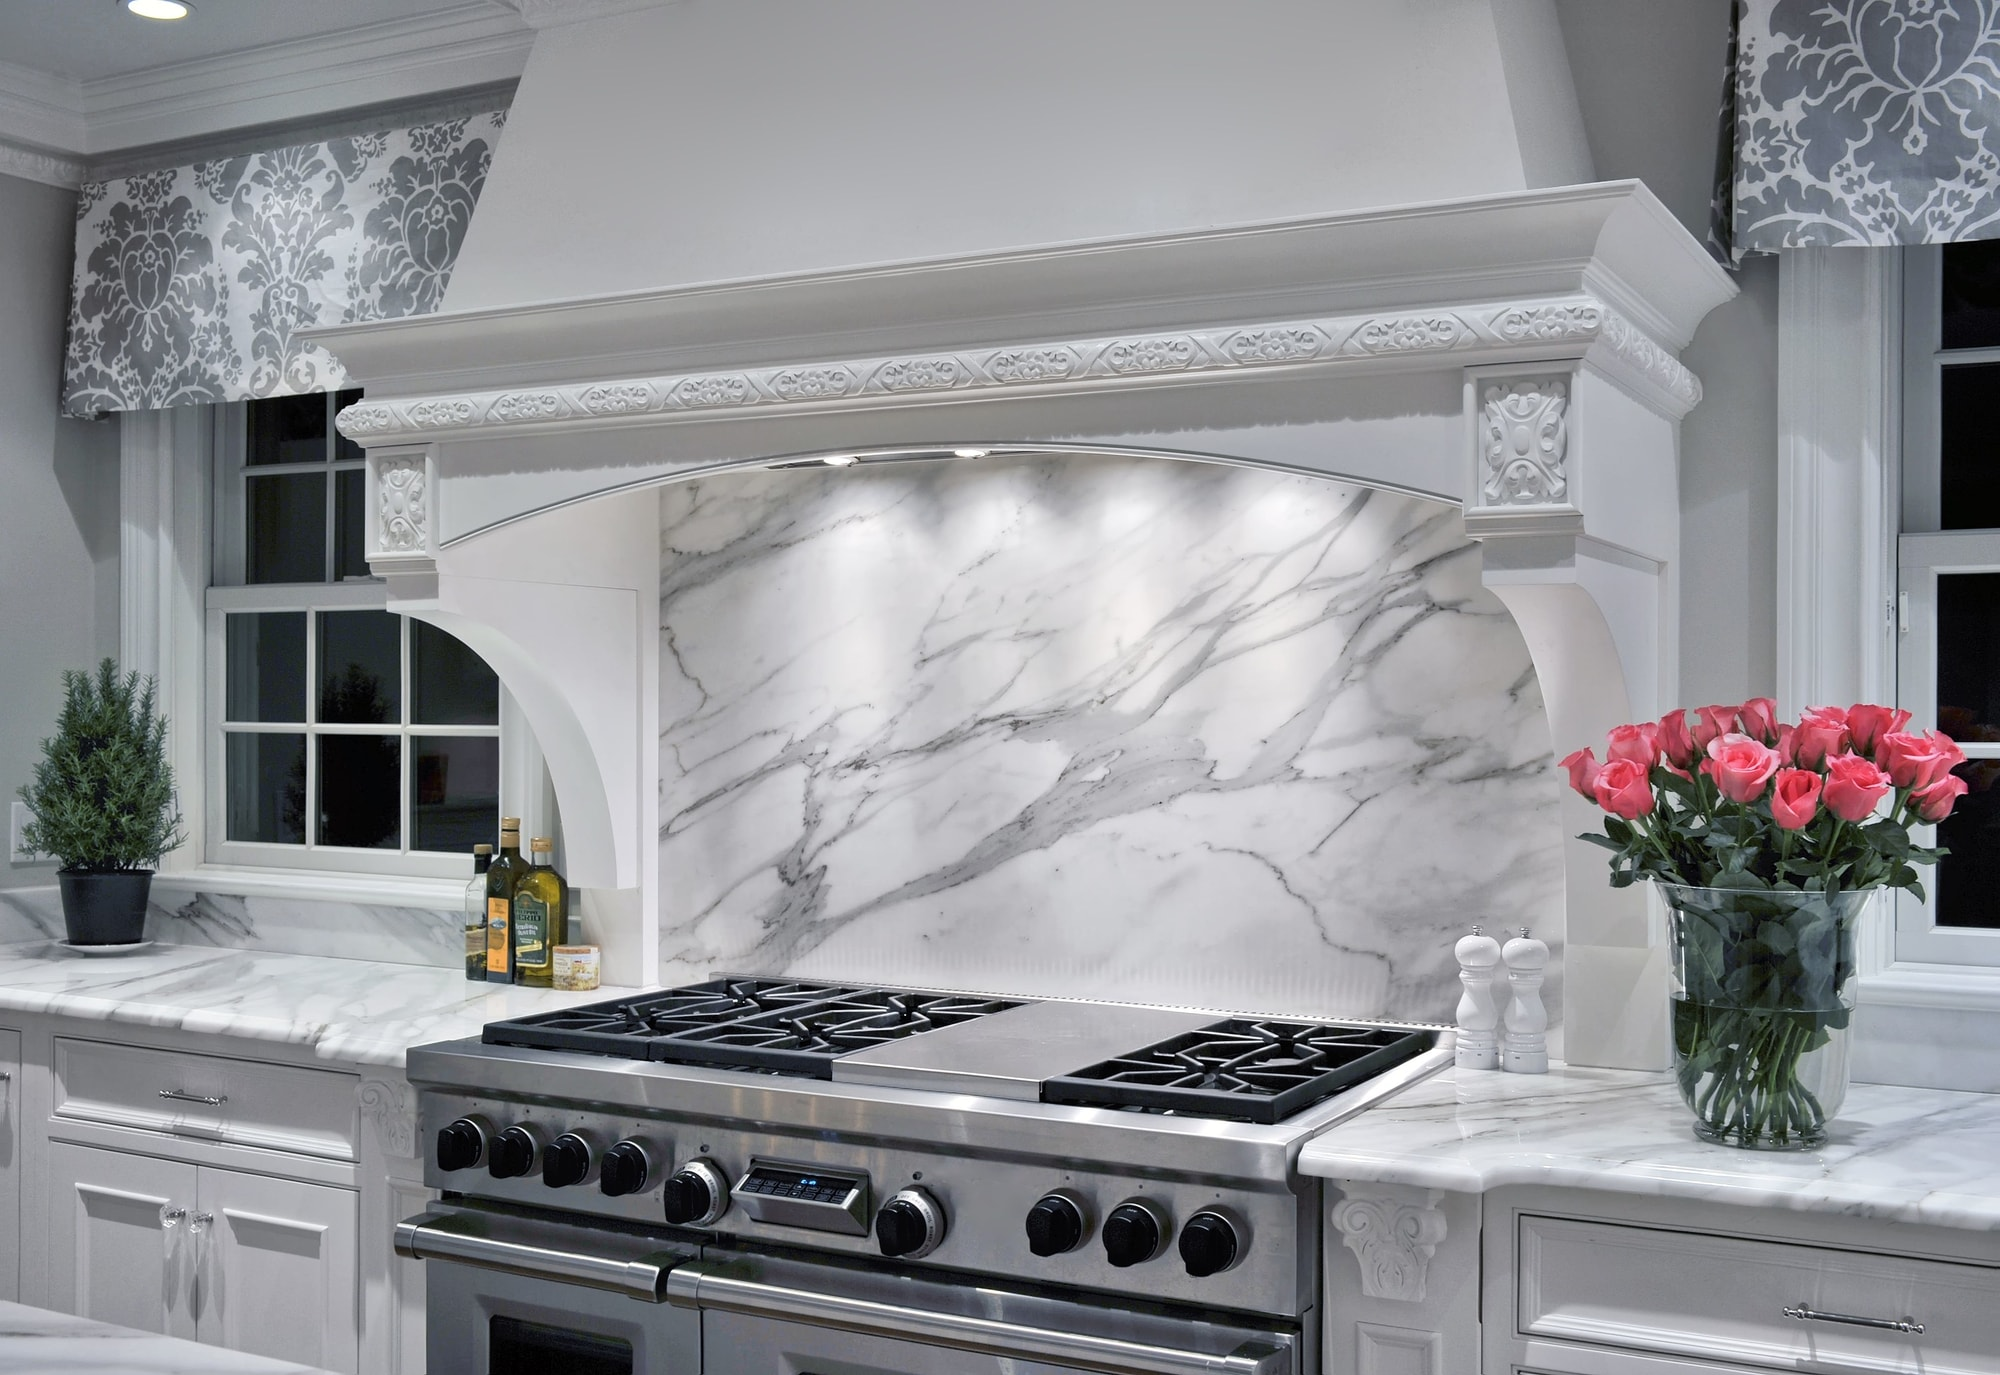 Transitional style kitchen with marble backsplash